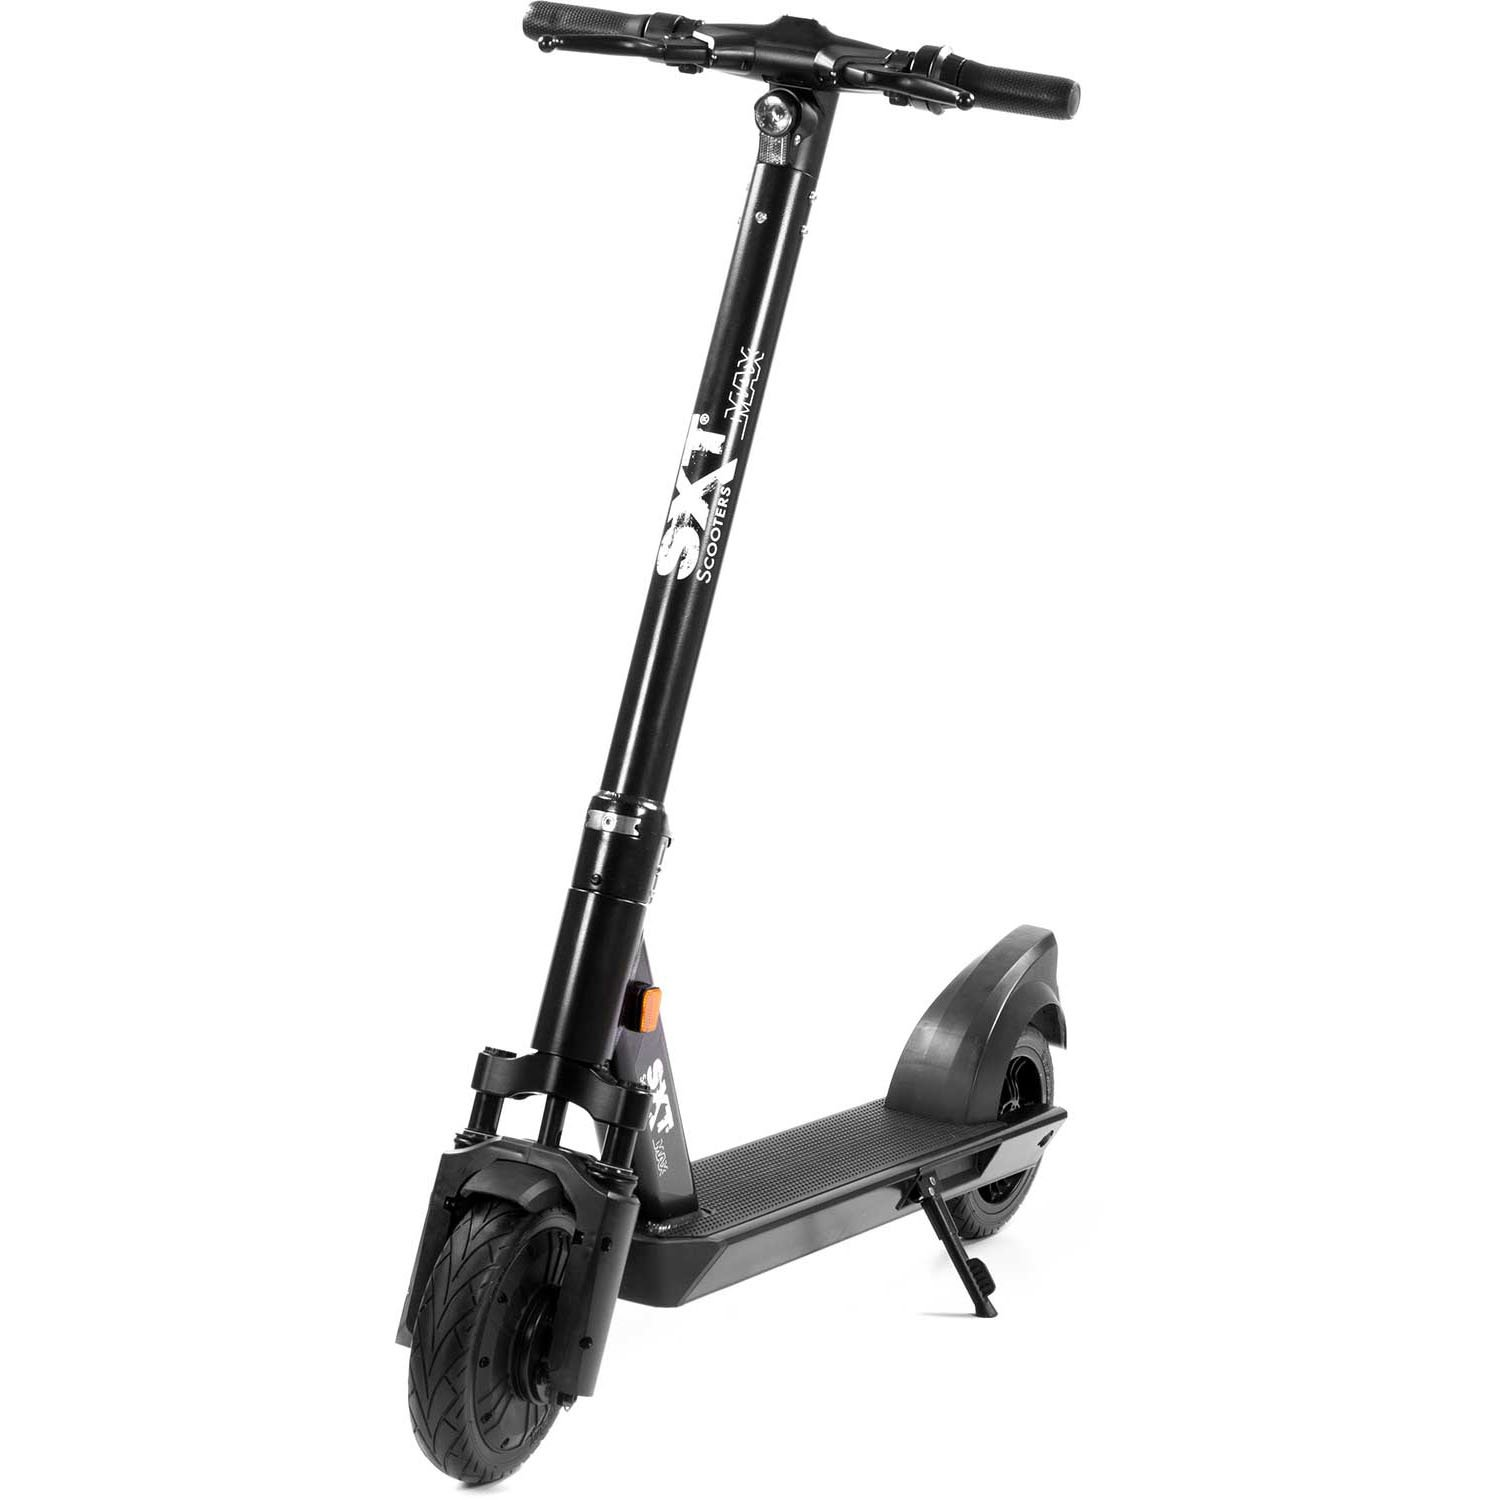 SXT MAX Electric Scooter eKFV (STVZO), 350W, Long Range, Dust-proof and Waterproof Resistant, 120kg Load, Front